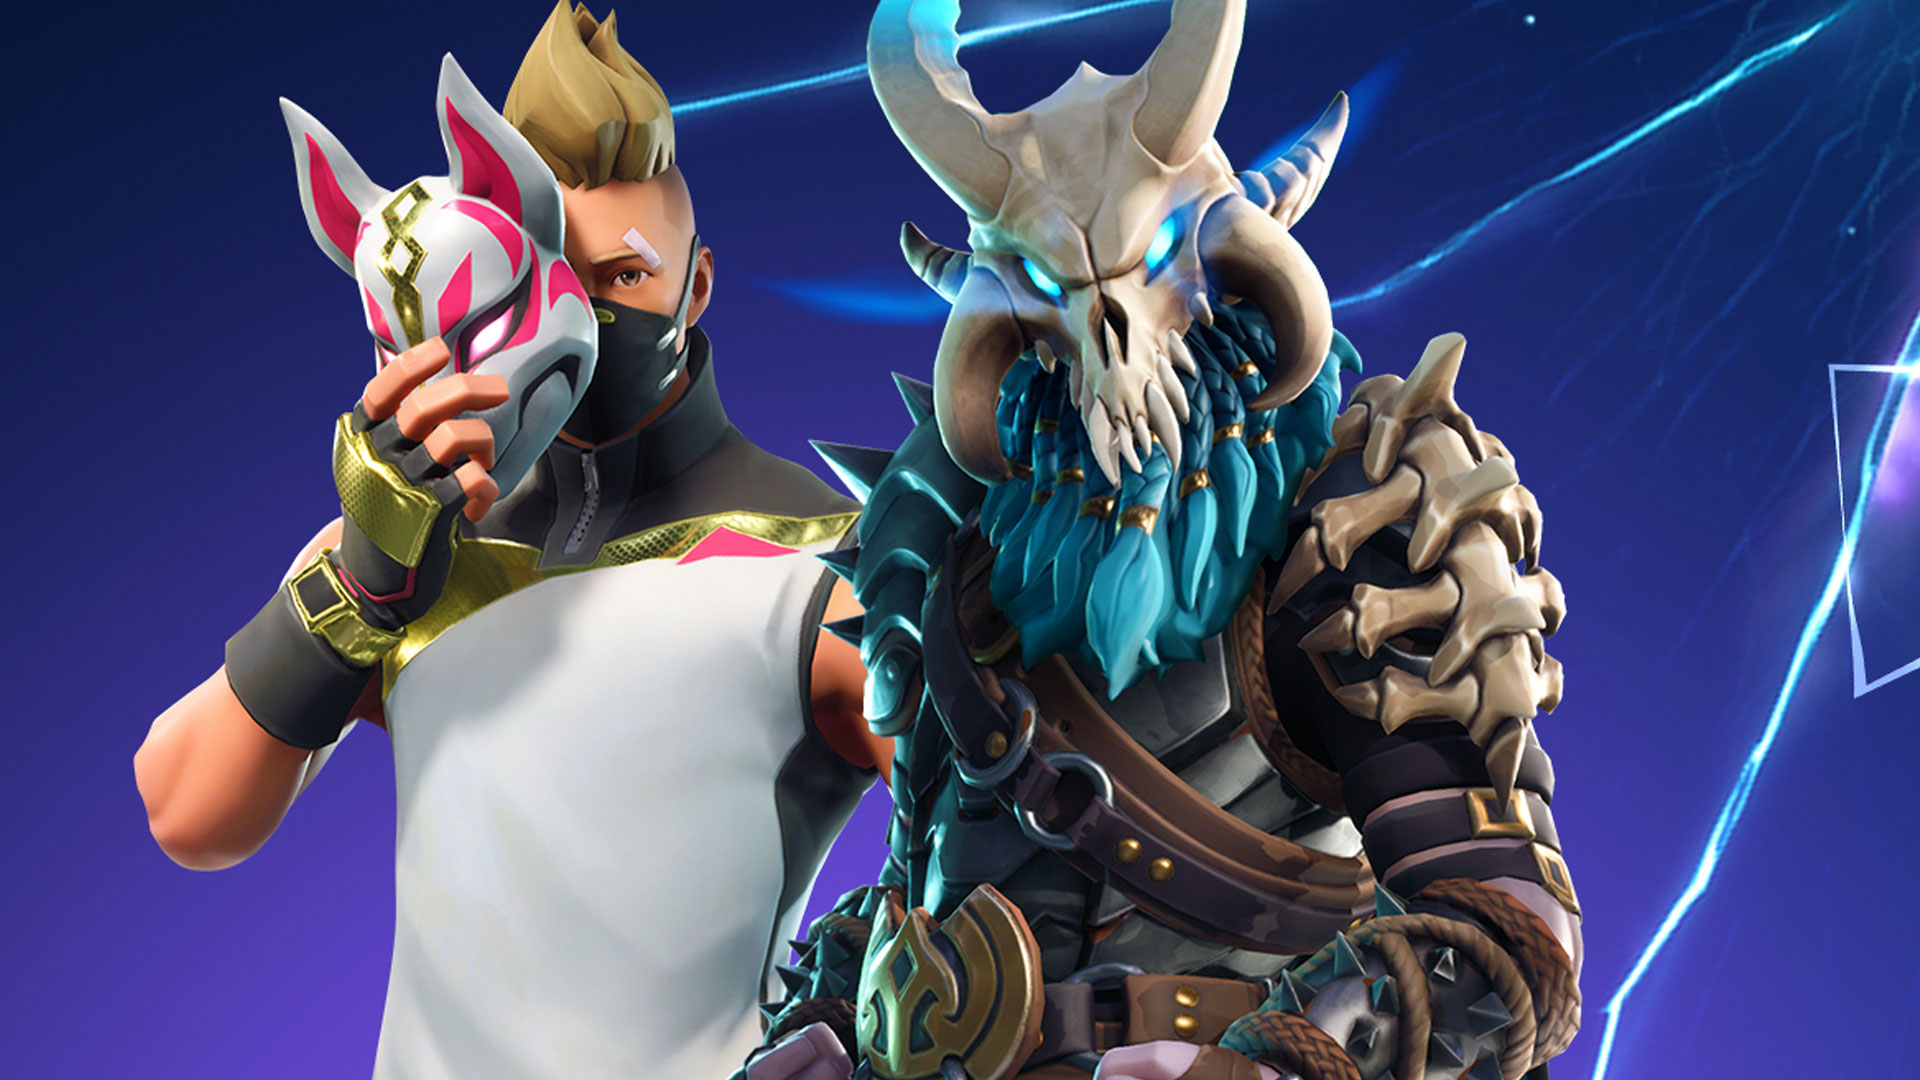 Watch Clip Fortnite Season 5 Gameplay Prime Video Fortnite season 5 officially starts at 9 pm pacific december 1, or 12:01 am eastern december 2, but there's a catch. watch clip fortnite season 5 gameplay